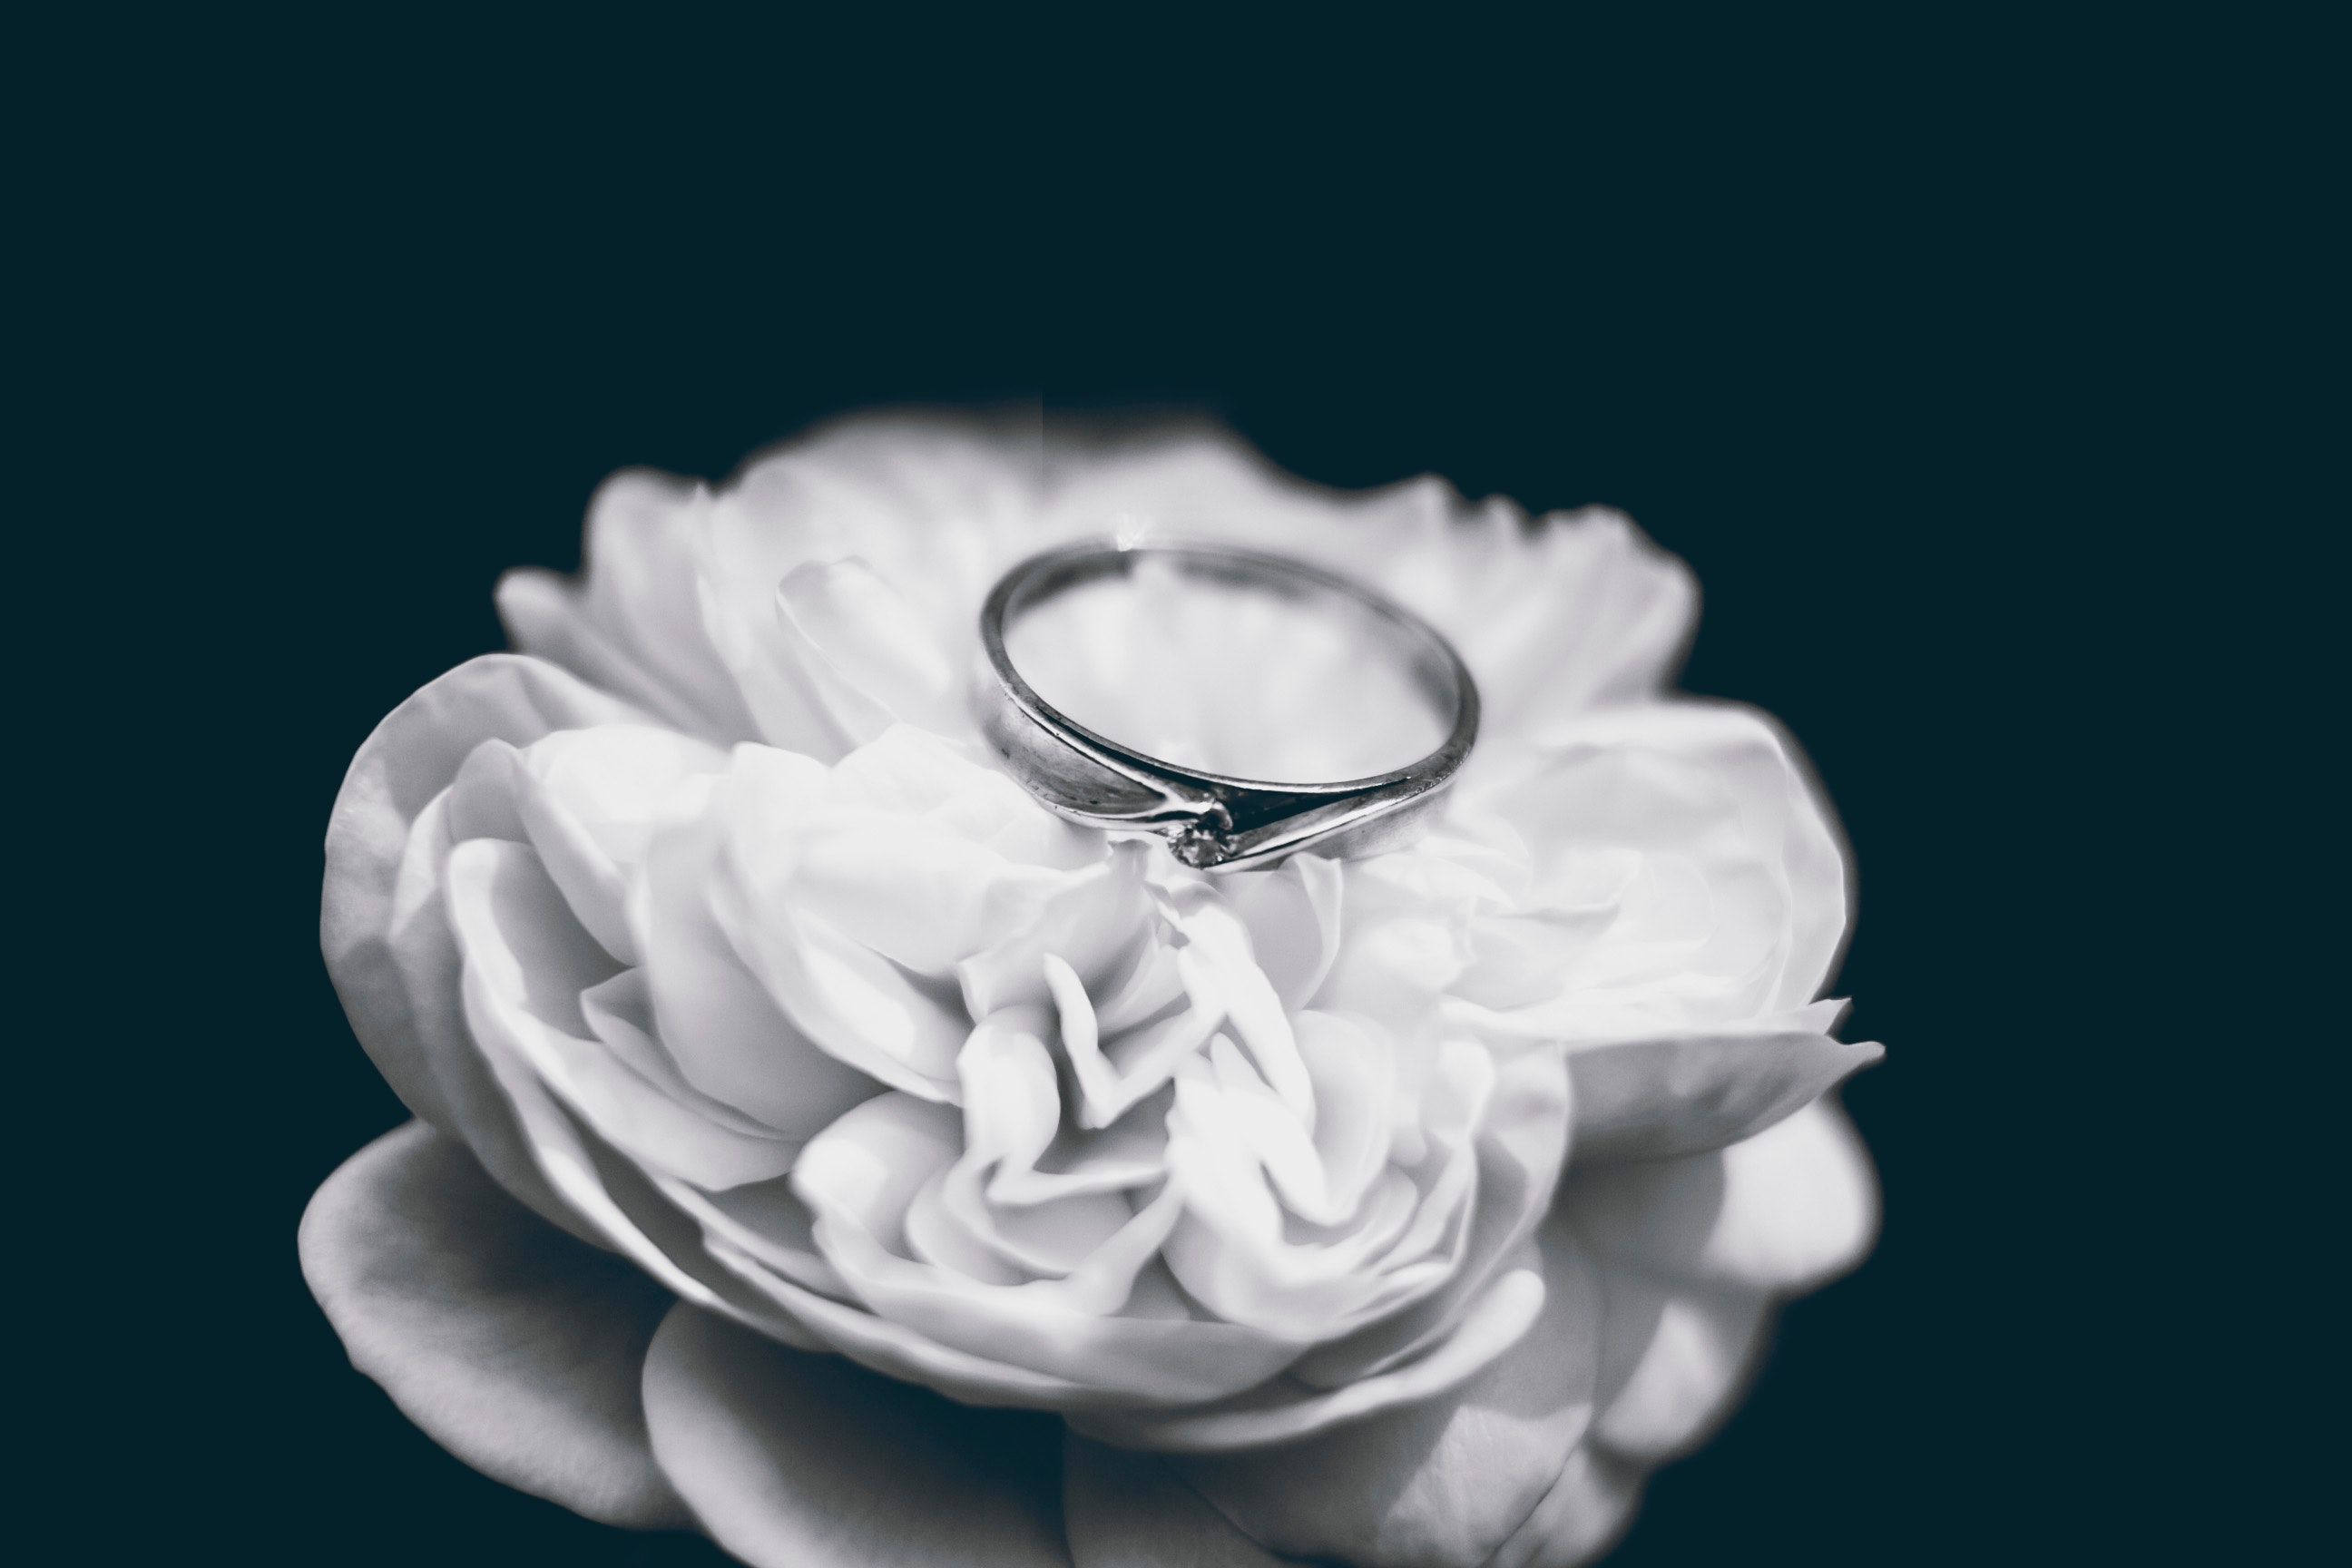 Photo of Silver Ring, Rose, Romantic, Wedding, Wedding ring, HQ Photo